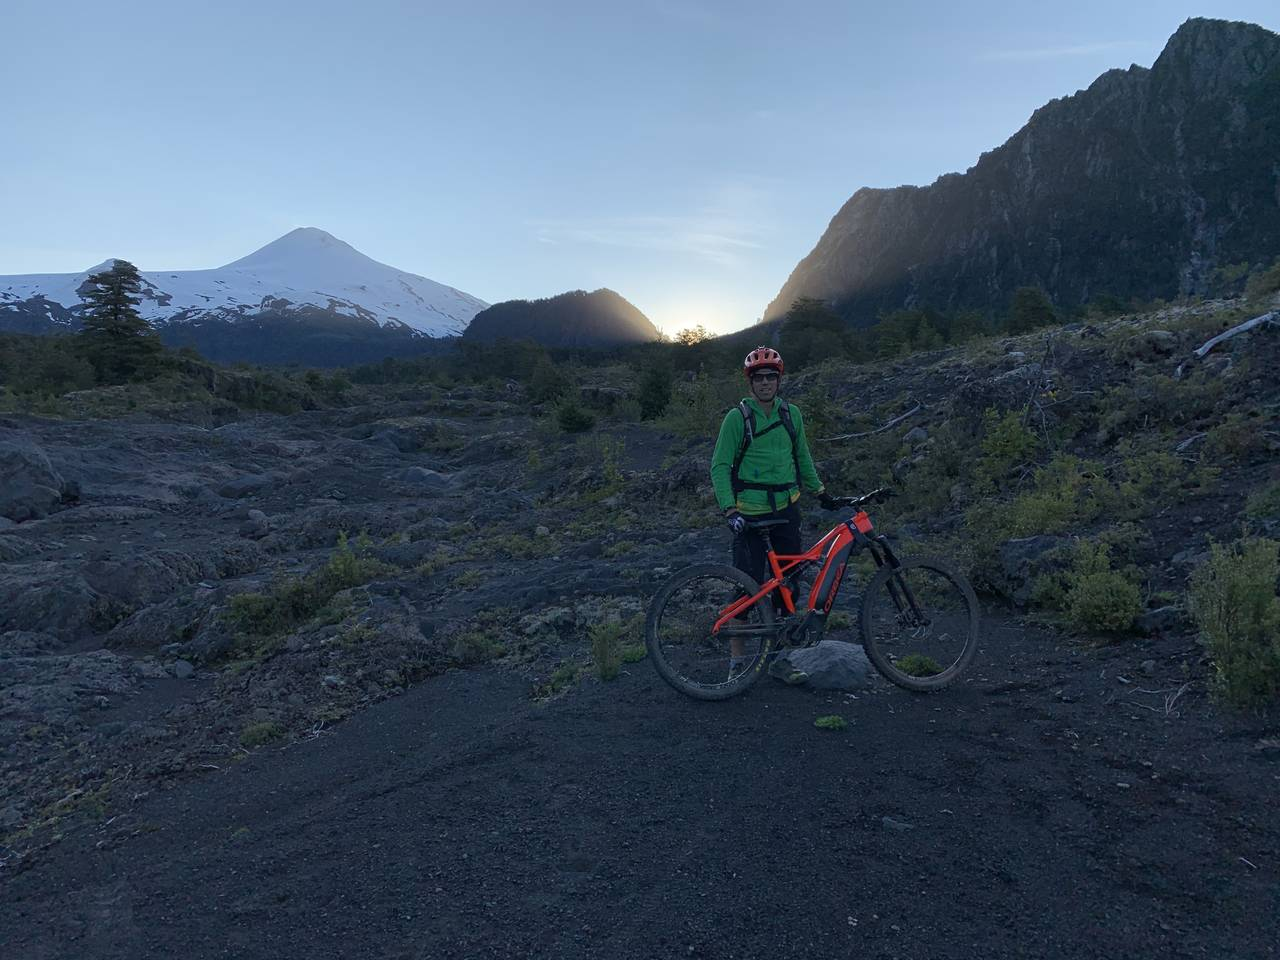 One of the amazing views from the path. Villarrica